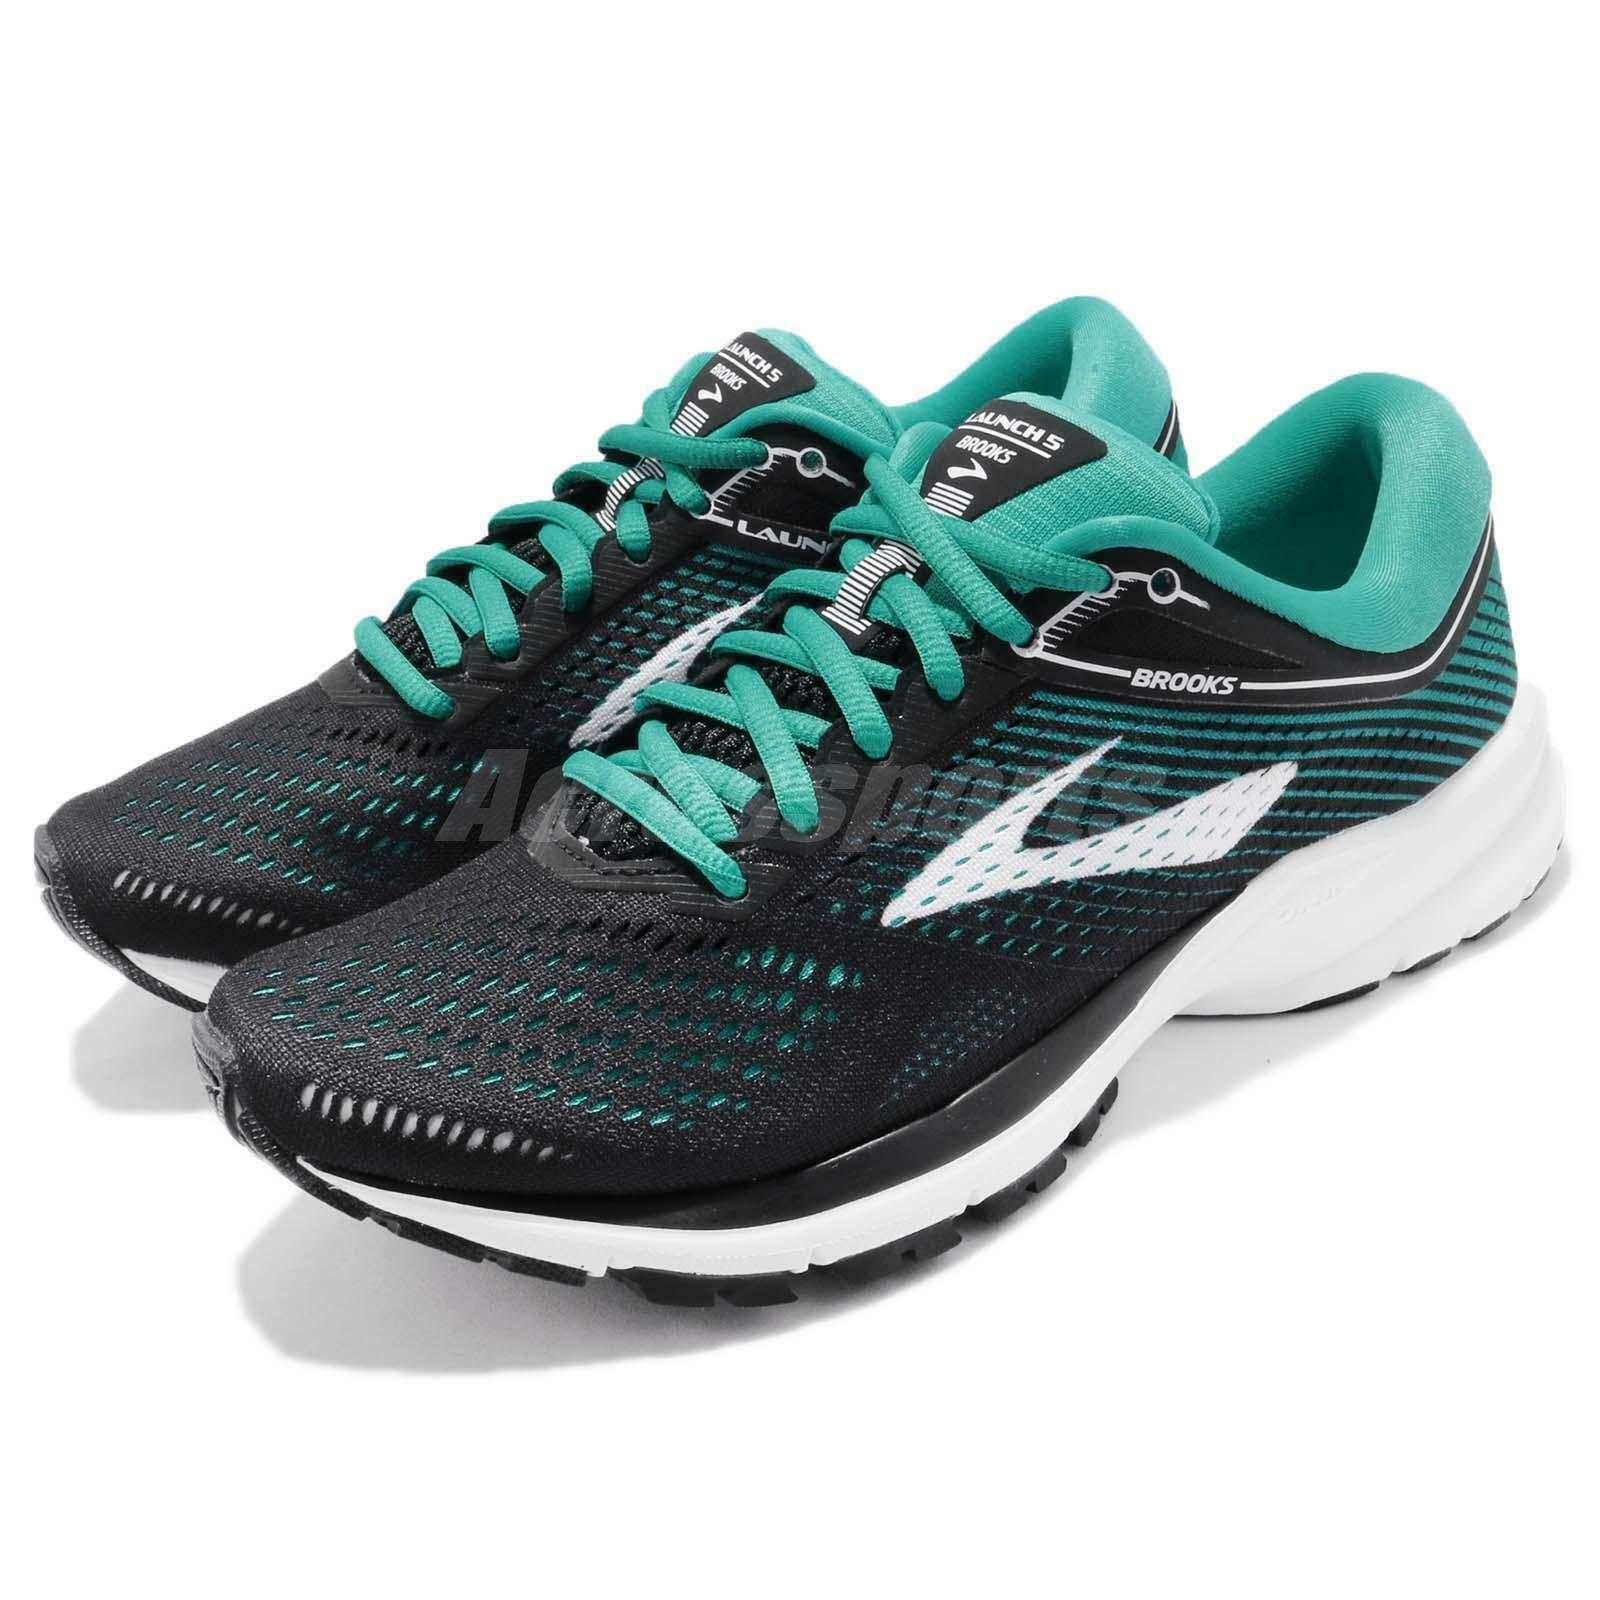 BROOKS Launch 5 WOMENS RUNNING SHOES